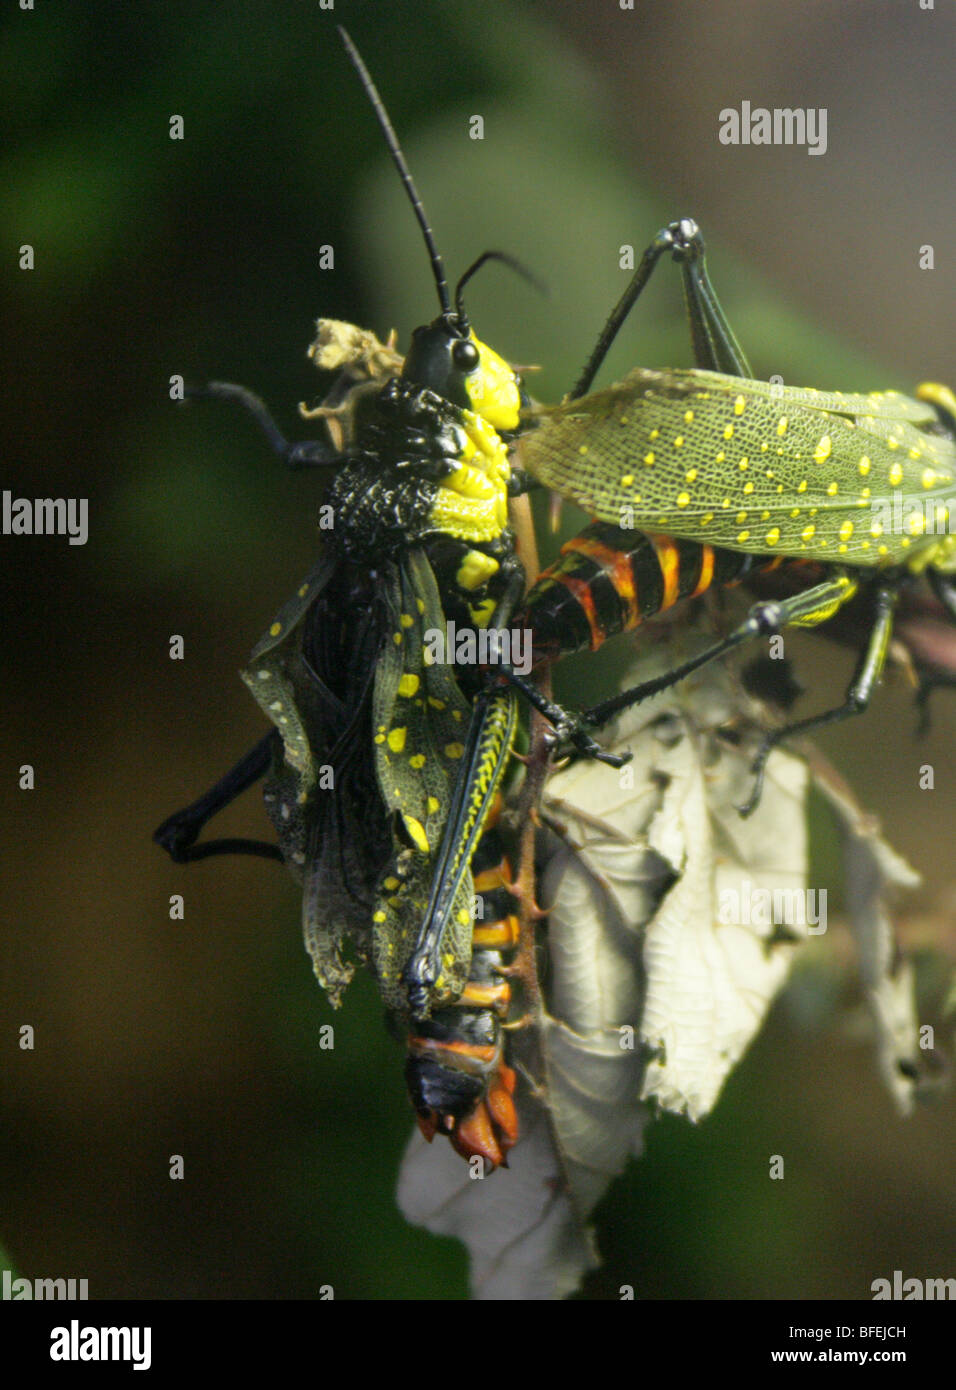 Northern Spotted Grasshopper, Aularches milliaris, Indonesia, Malaysia, Thailand, South East Asia - Stock Image